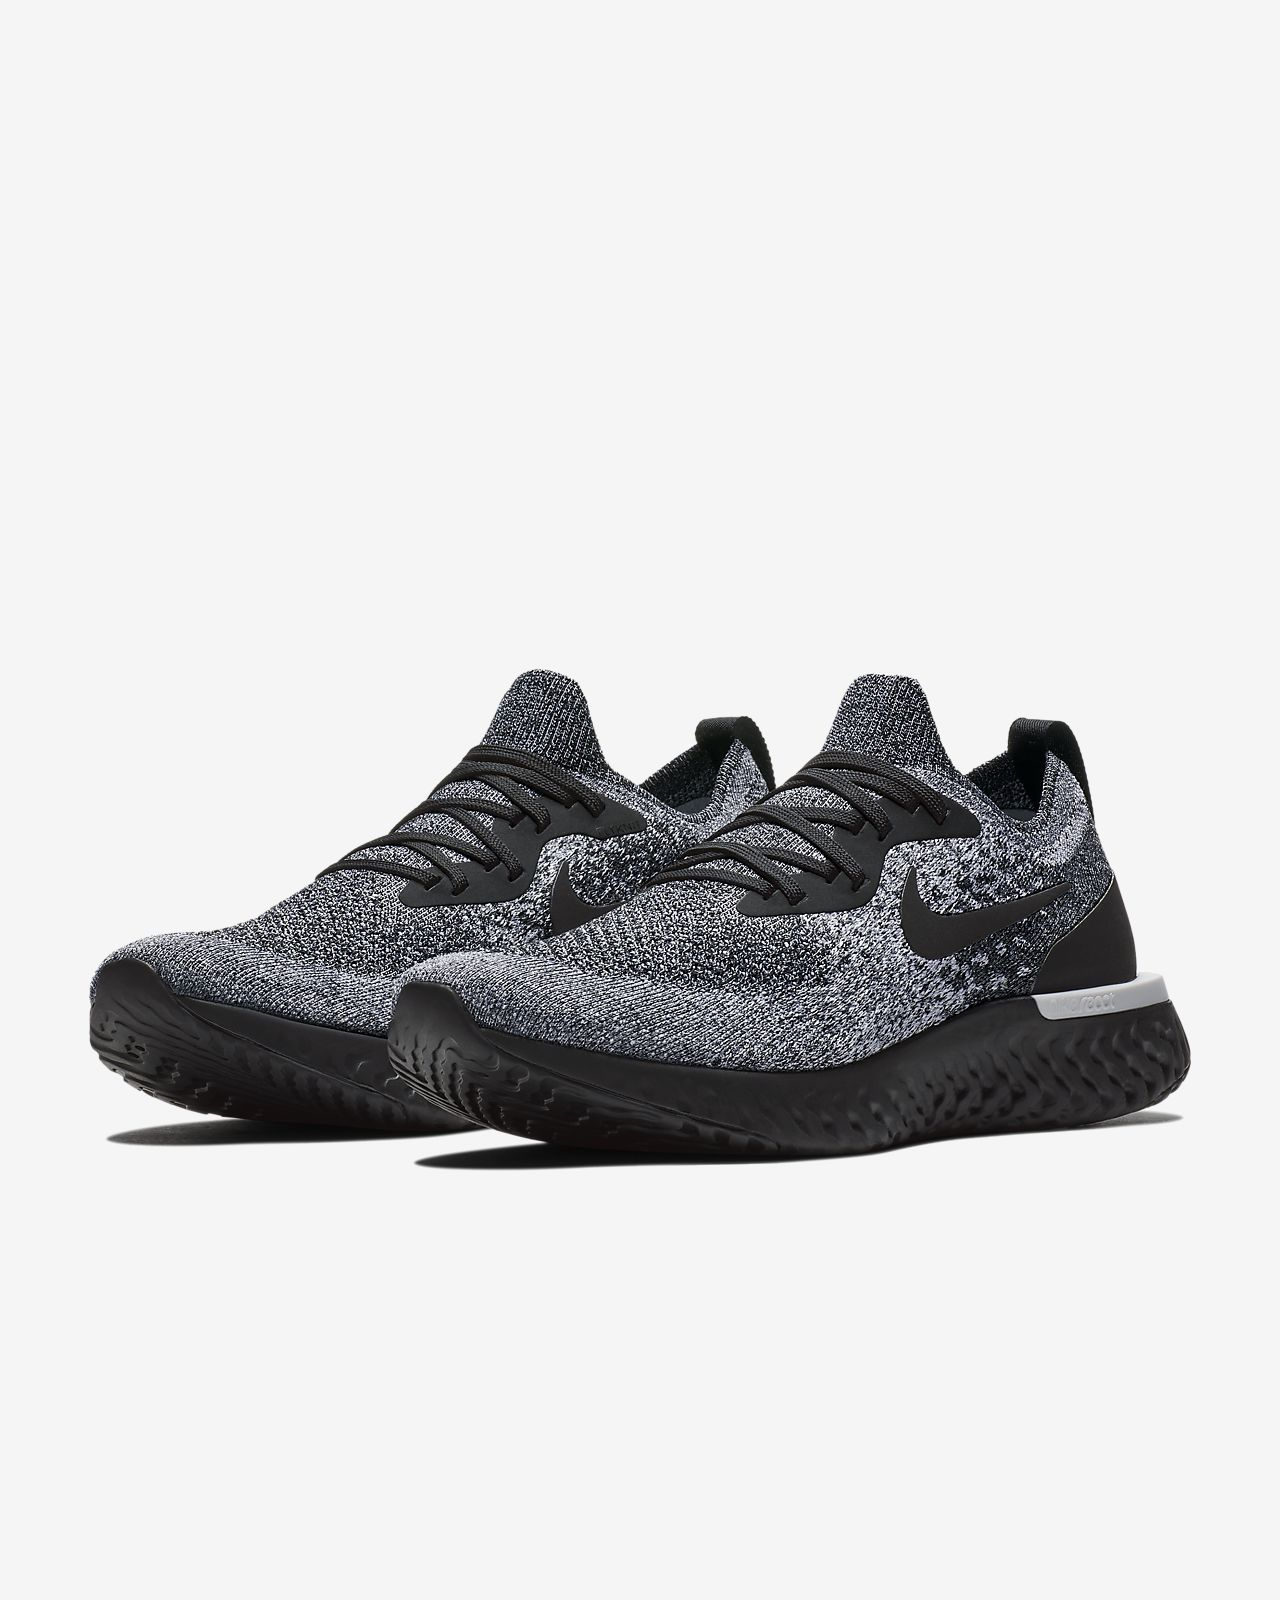 33d8e0efdc301 Nike Epic React Flyknit Men s Running Shoe. Nike.com MY